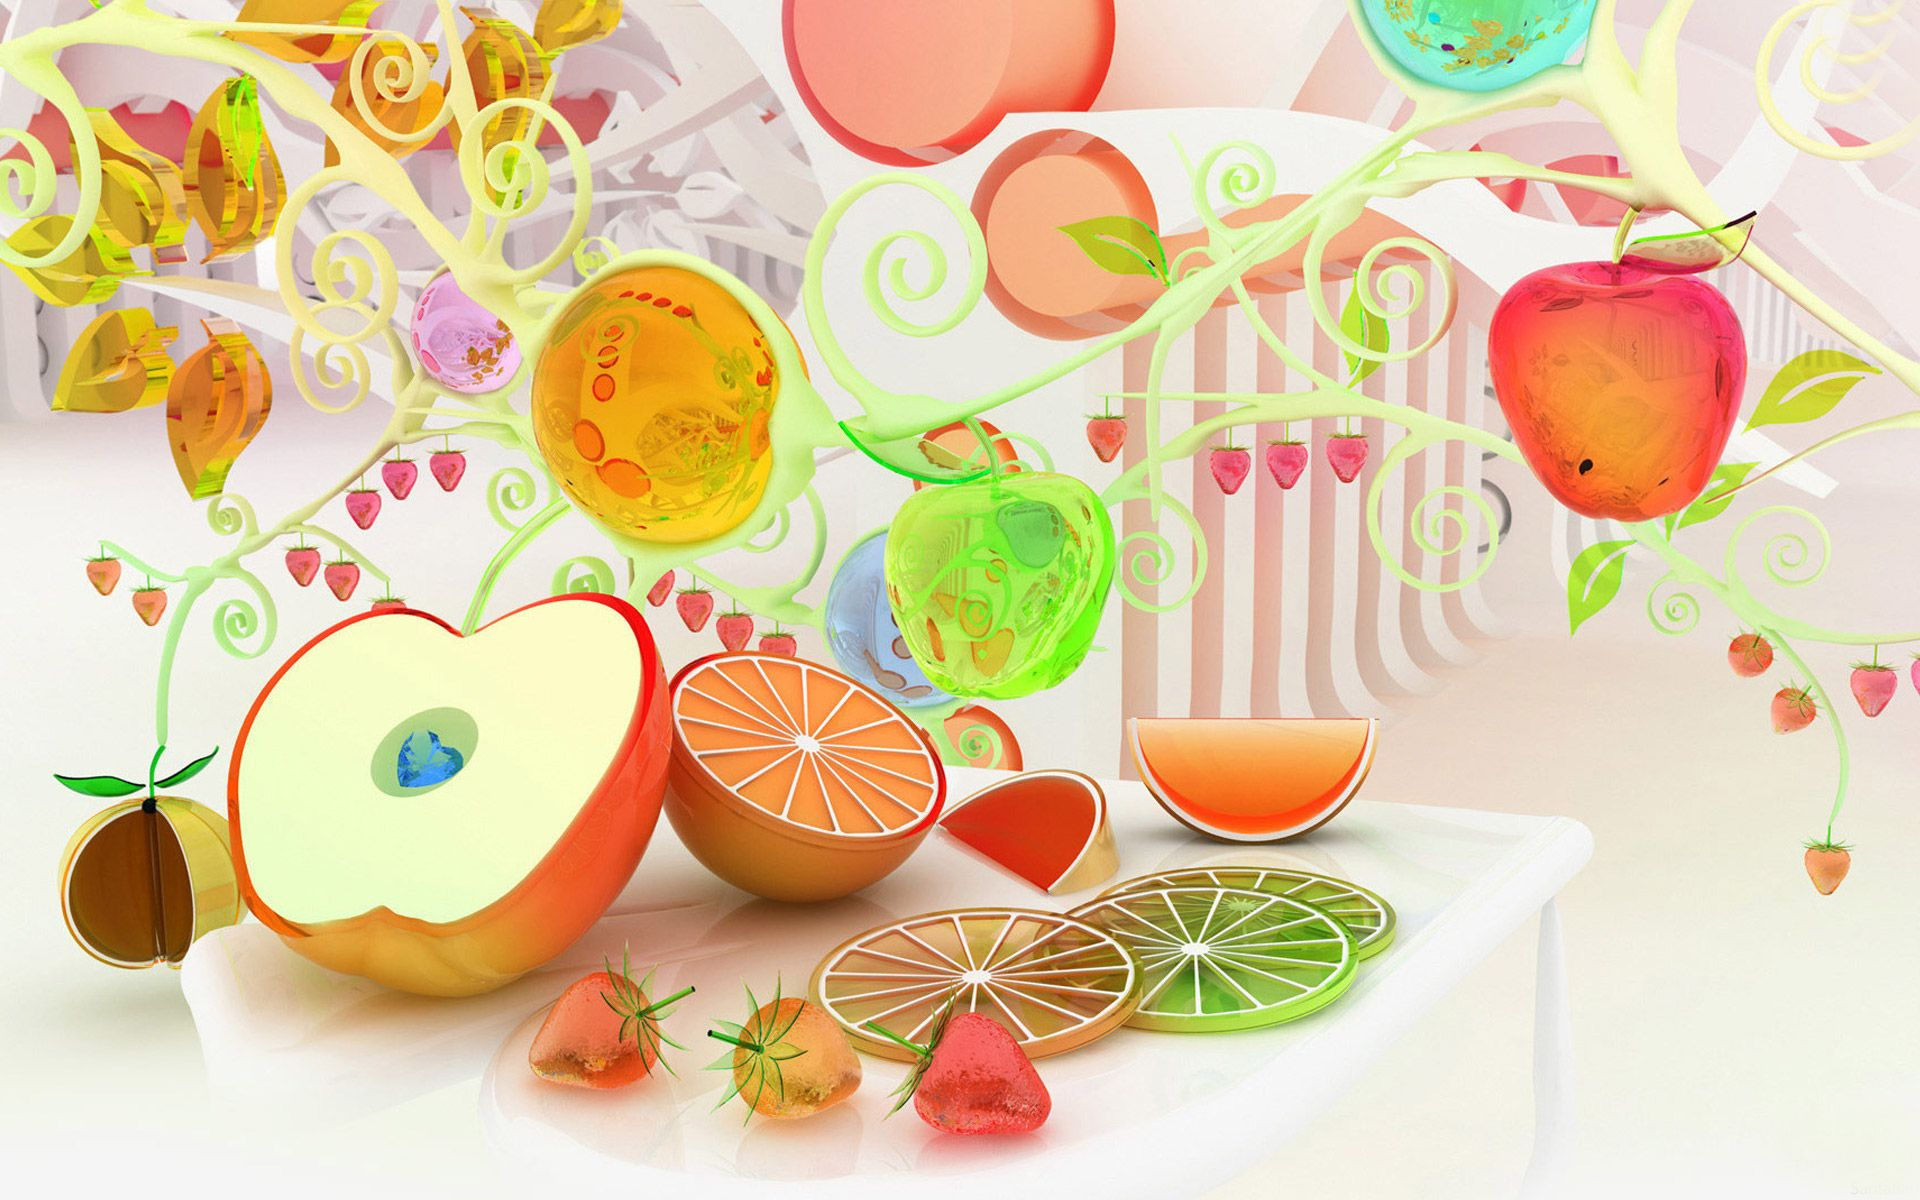 Fruits 3d wallpapers - 3d Glass Fruits Wallpaper Abstract 3d Effect Hd Wallpaper Free Download